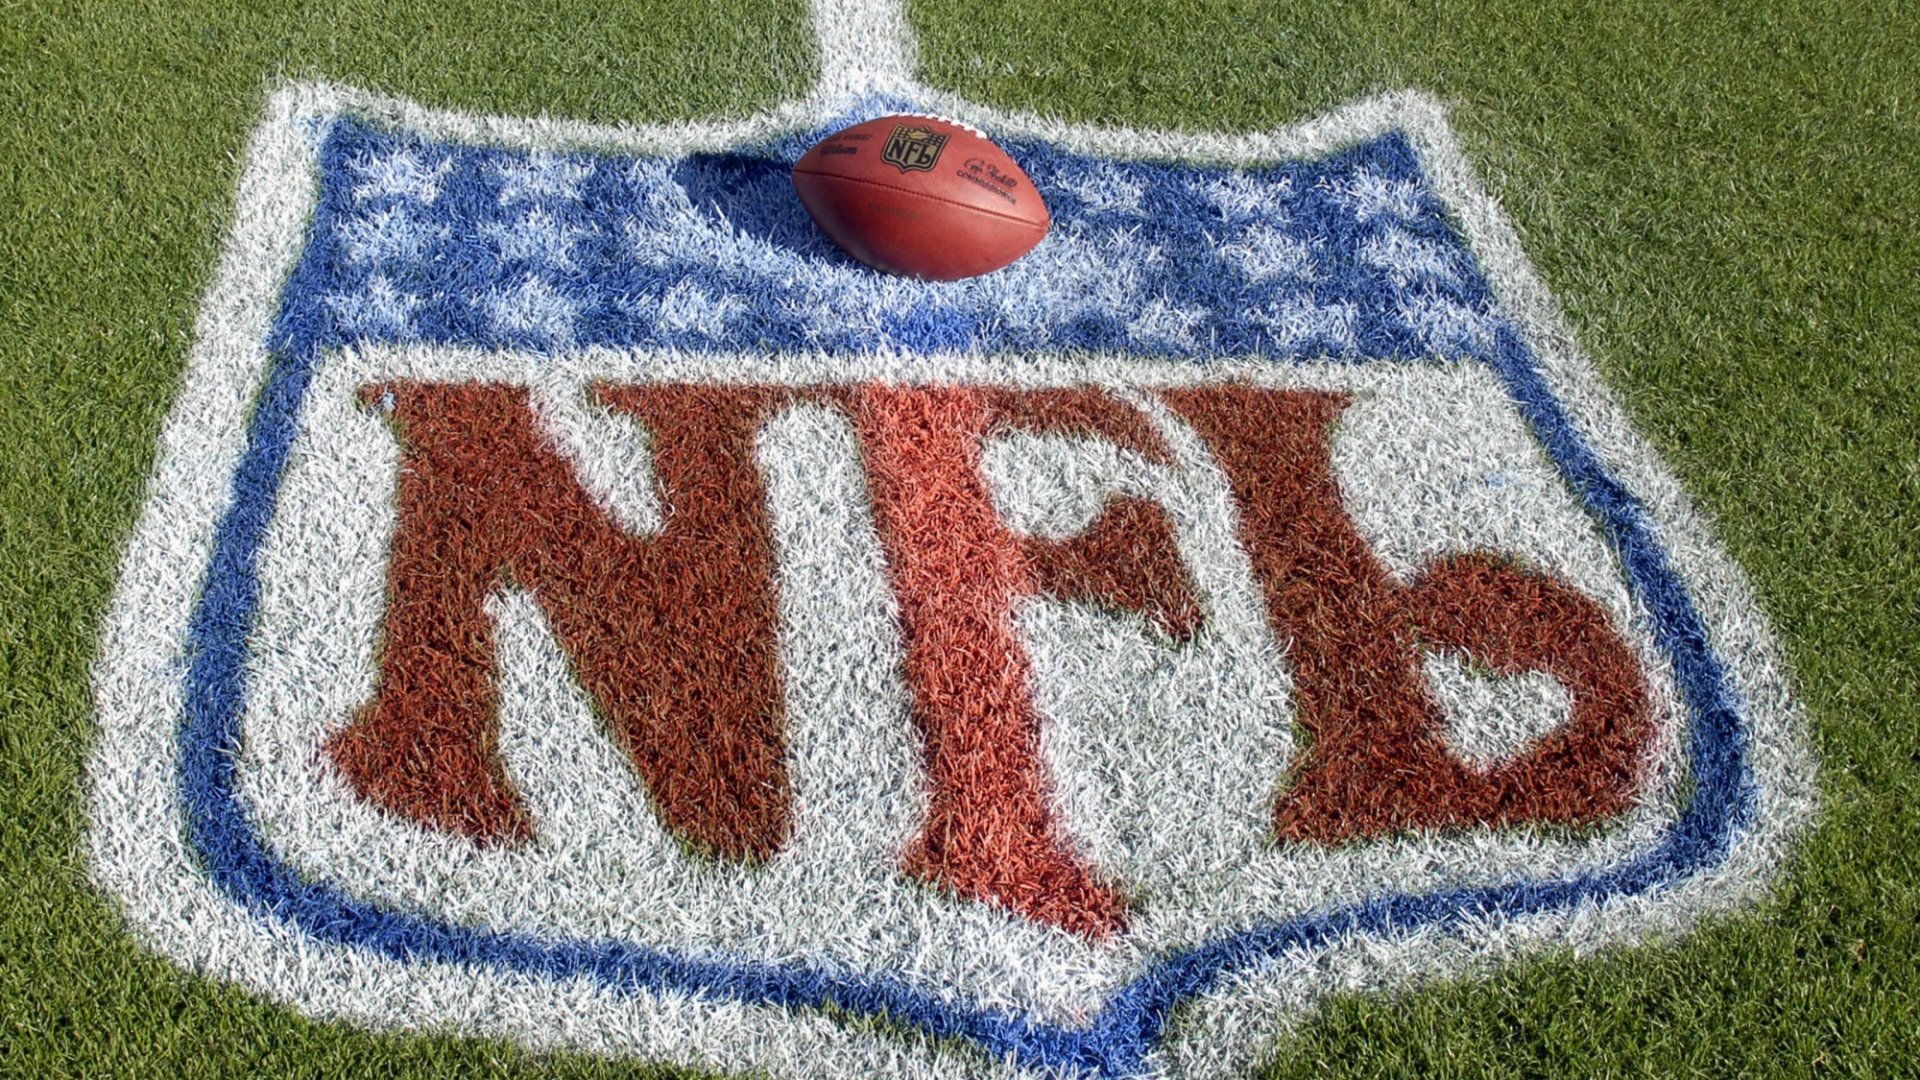 Postponed NFL Season Could Prompt Mass Cord Cut